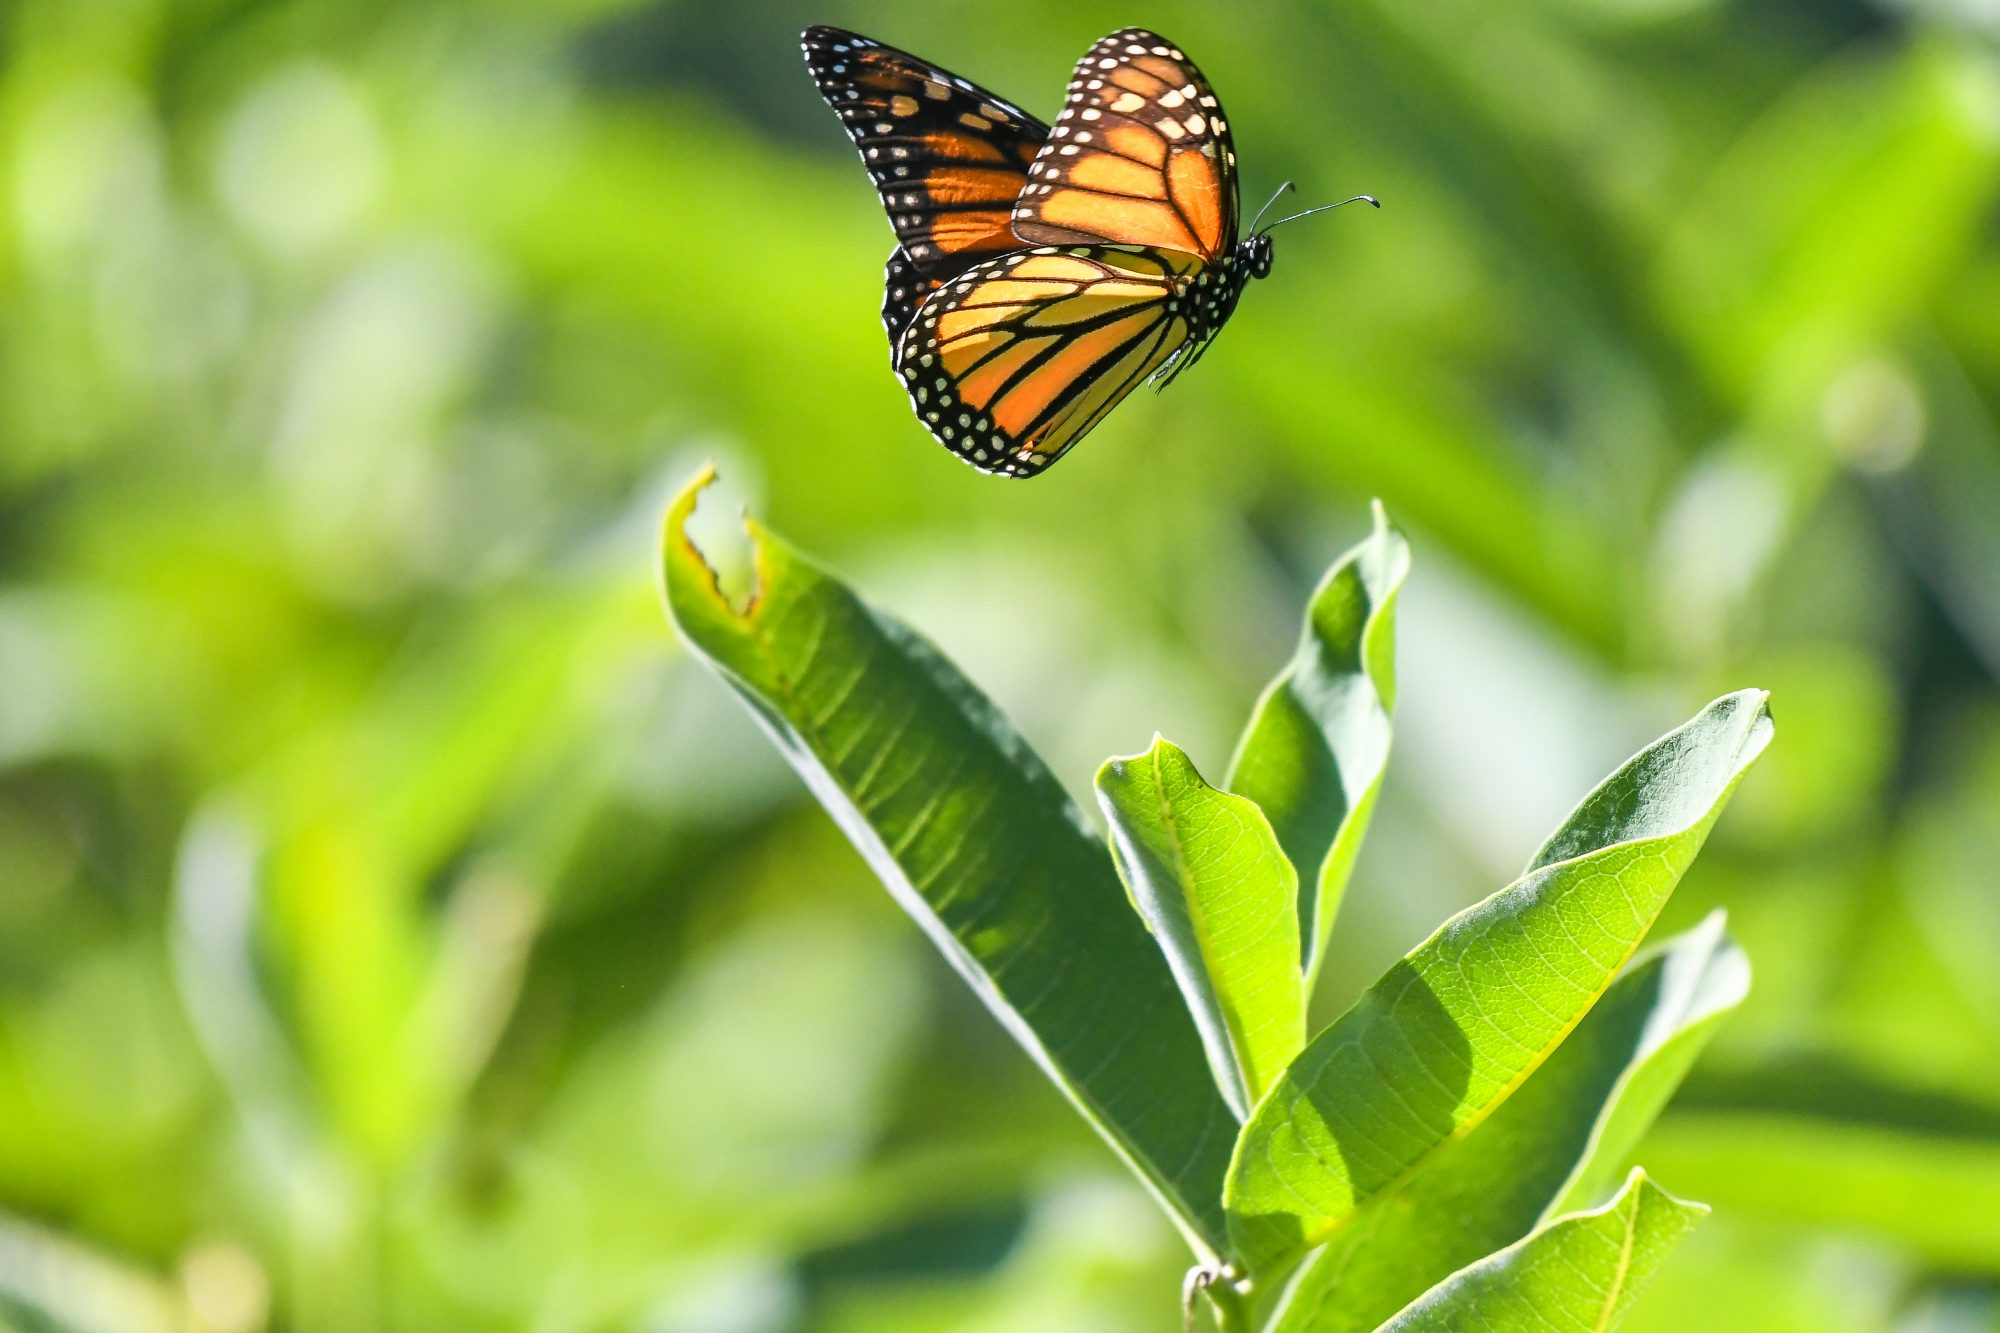 Plant This If You Want Monarch Butterflies to Take Over Your Yard